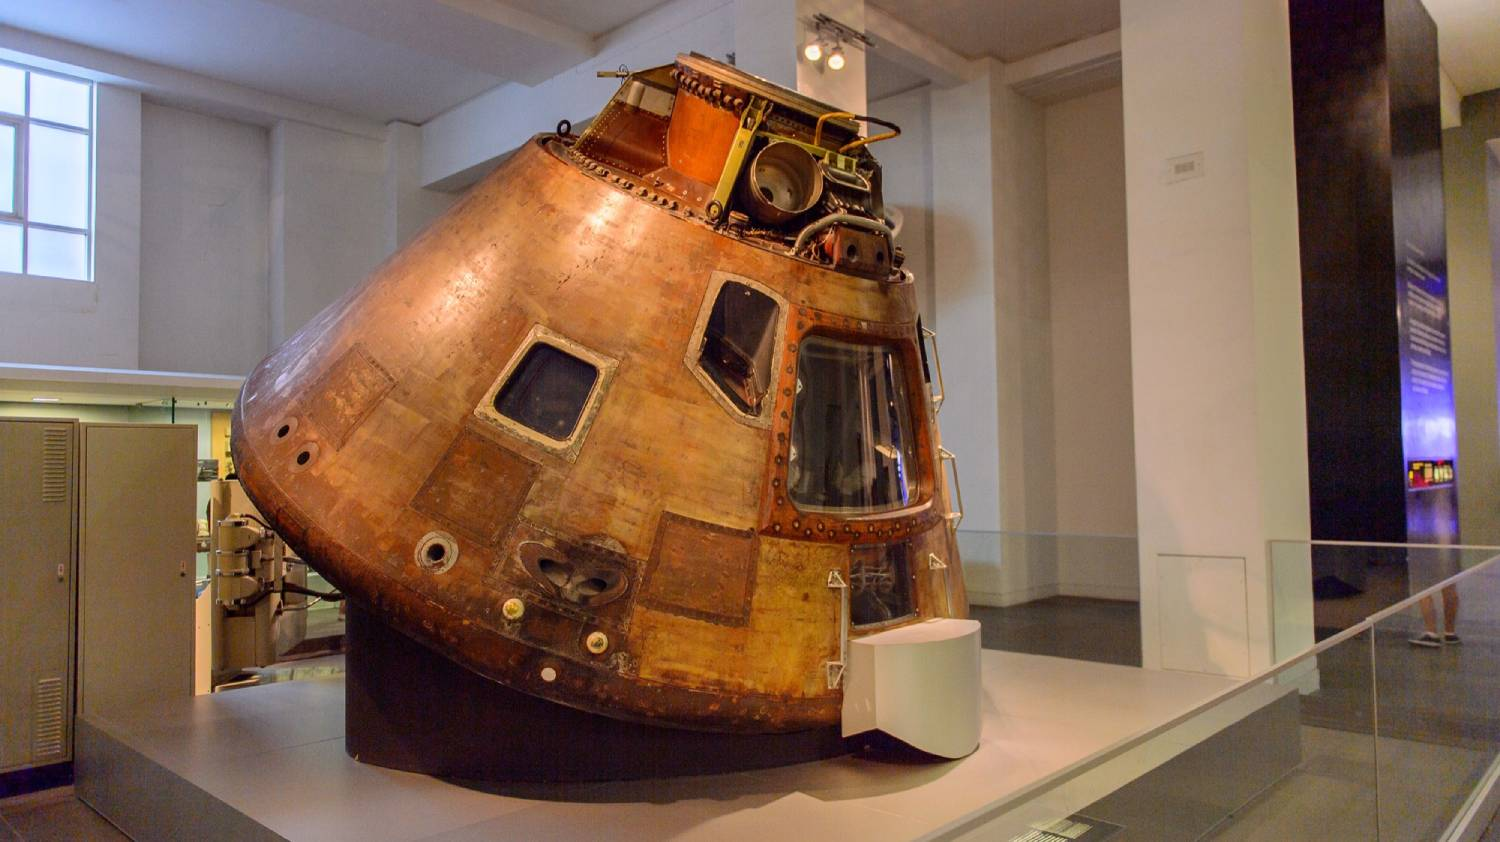 Science Museum - Things To Do In London